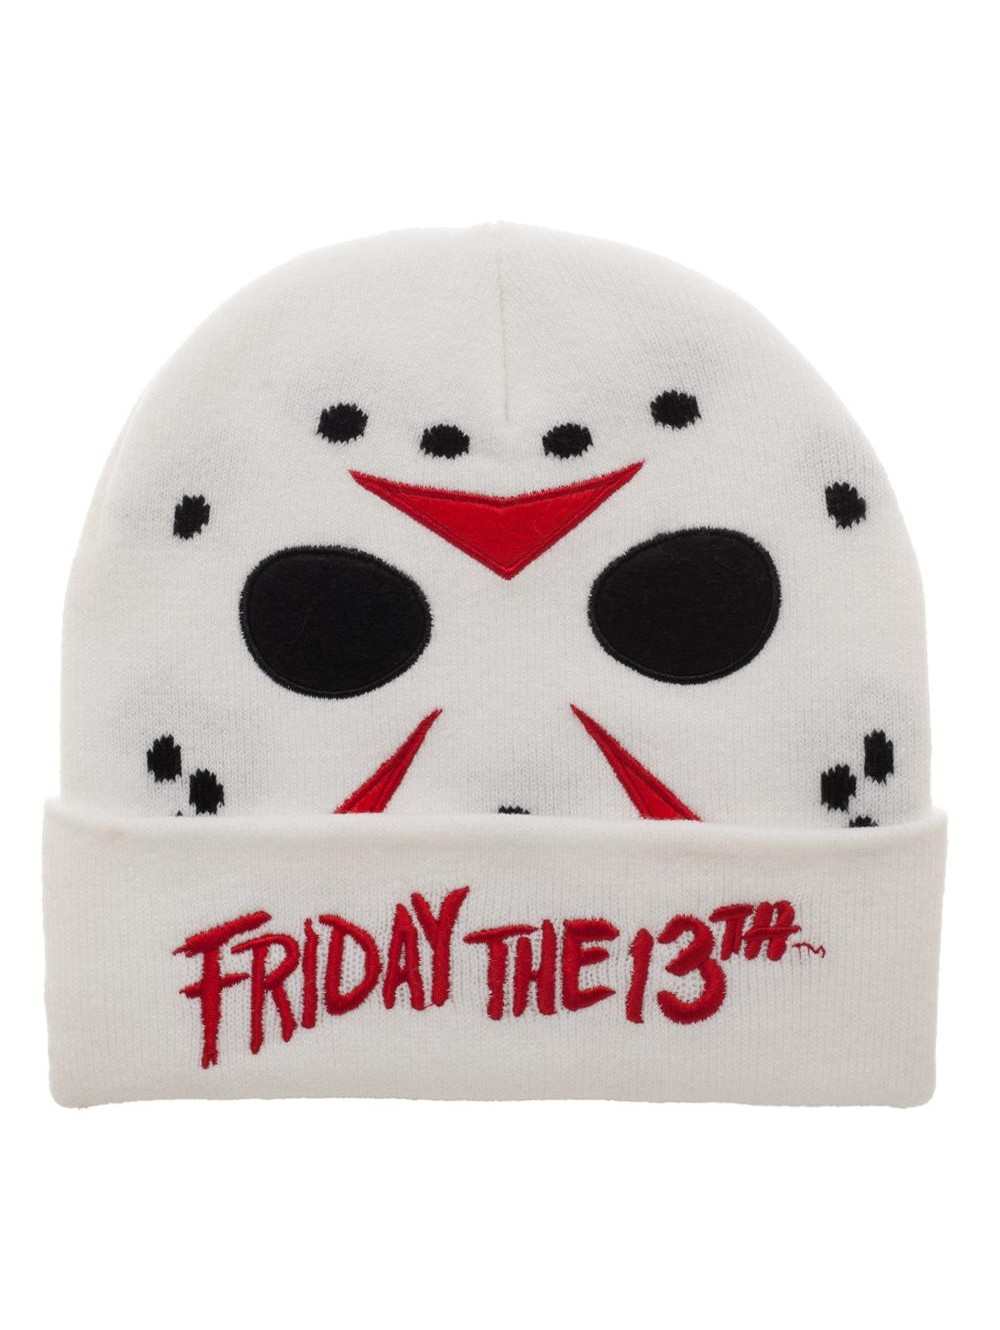 FRIDAY THE 13th -